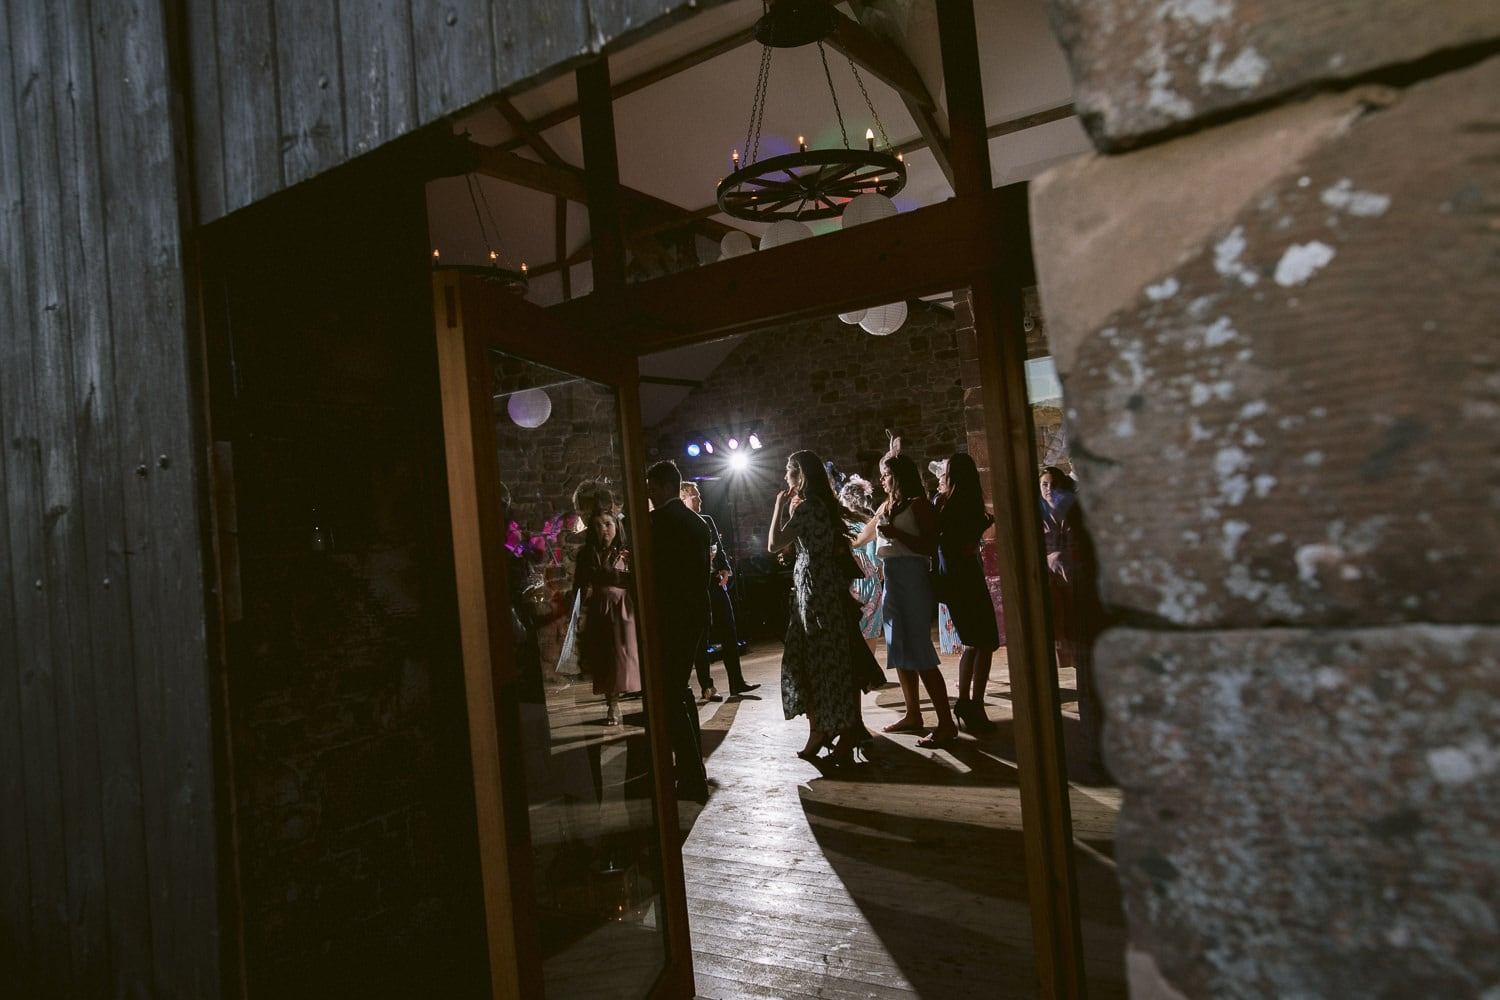 Photography View Of Entrance to Main Hall Dance Floor